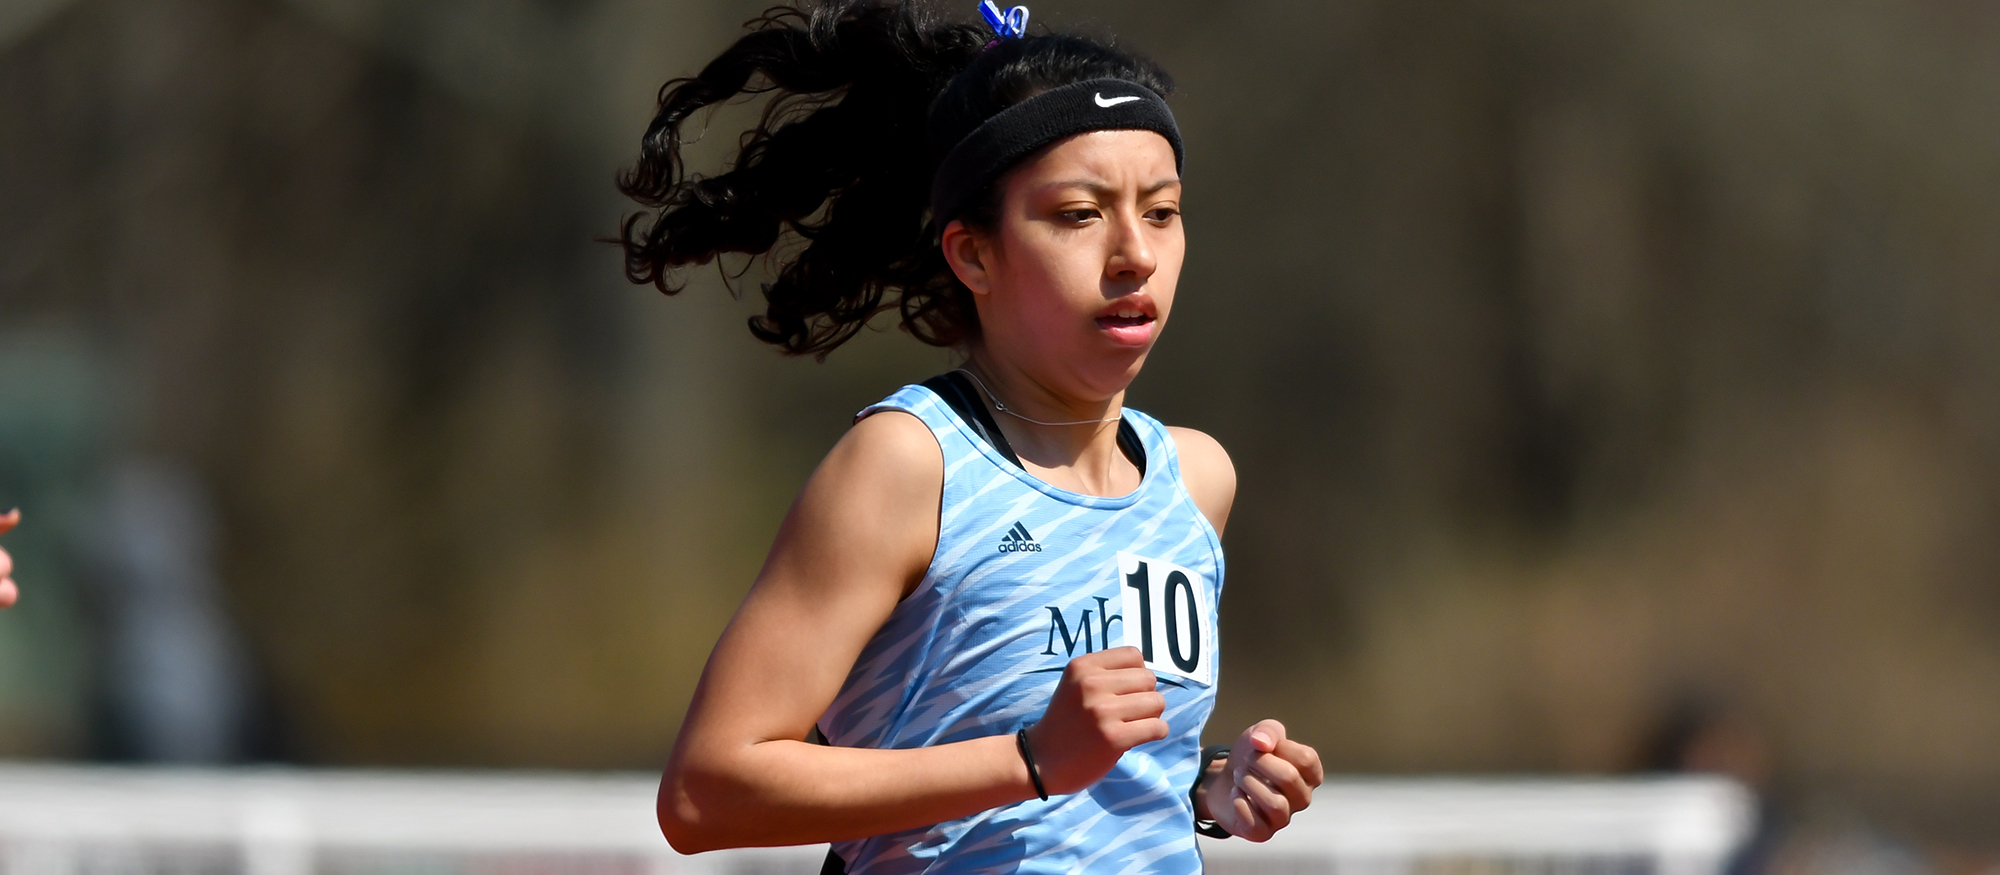 Action photo of Lyons track & field athlete, Michelle Serrano.